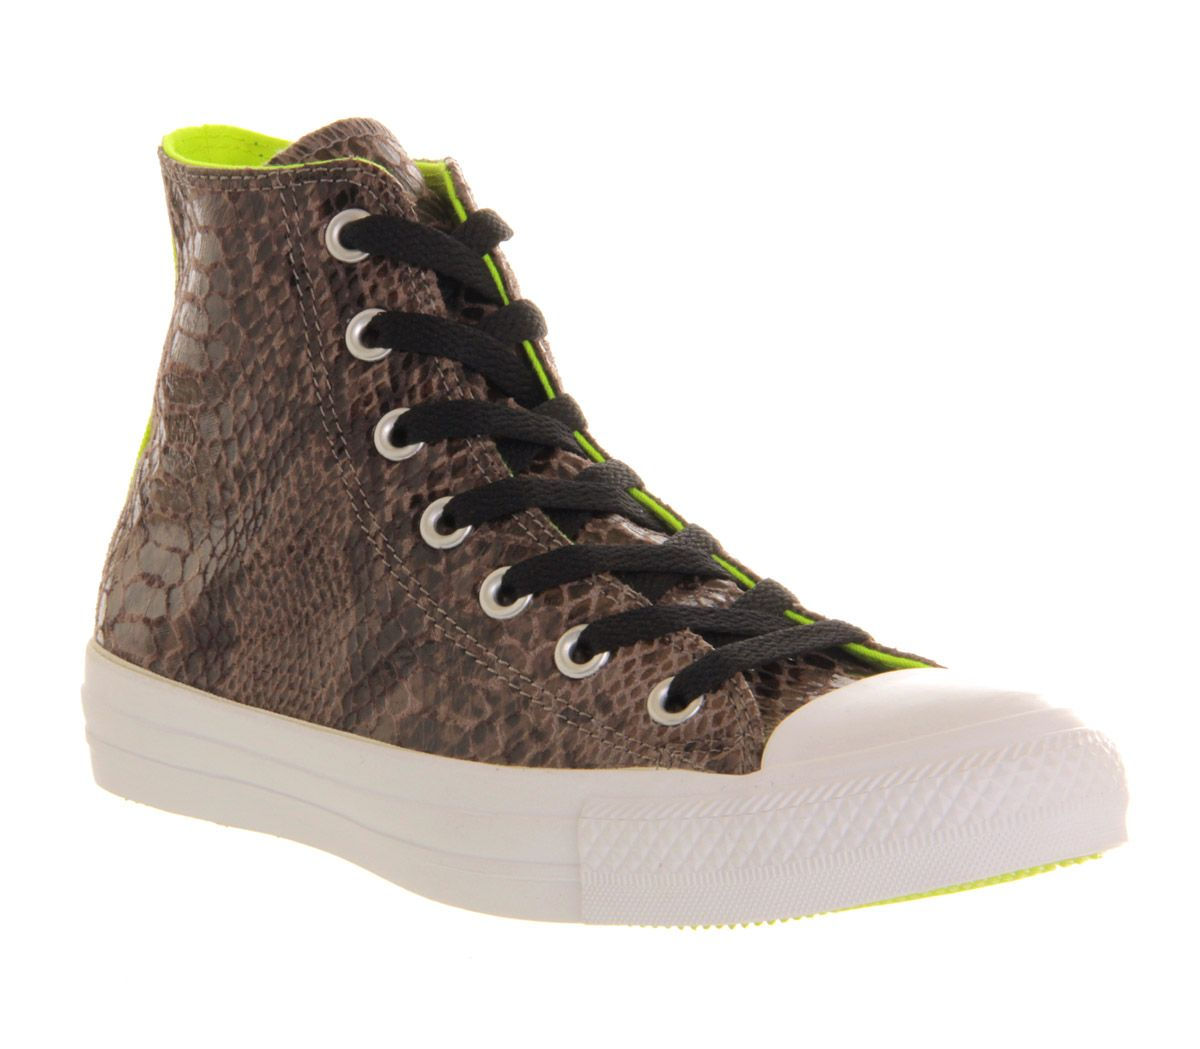 1f4980730b1603 Mens Converse Converse All Star Hi GREY SNAKE NEON YELLOW EXCLUSIVE  Trainers Sho